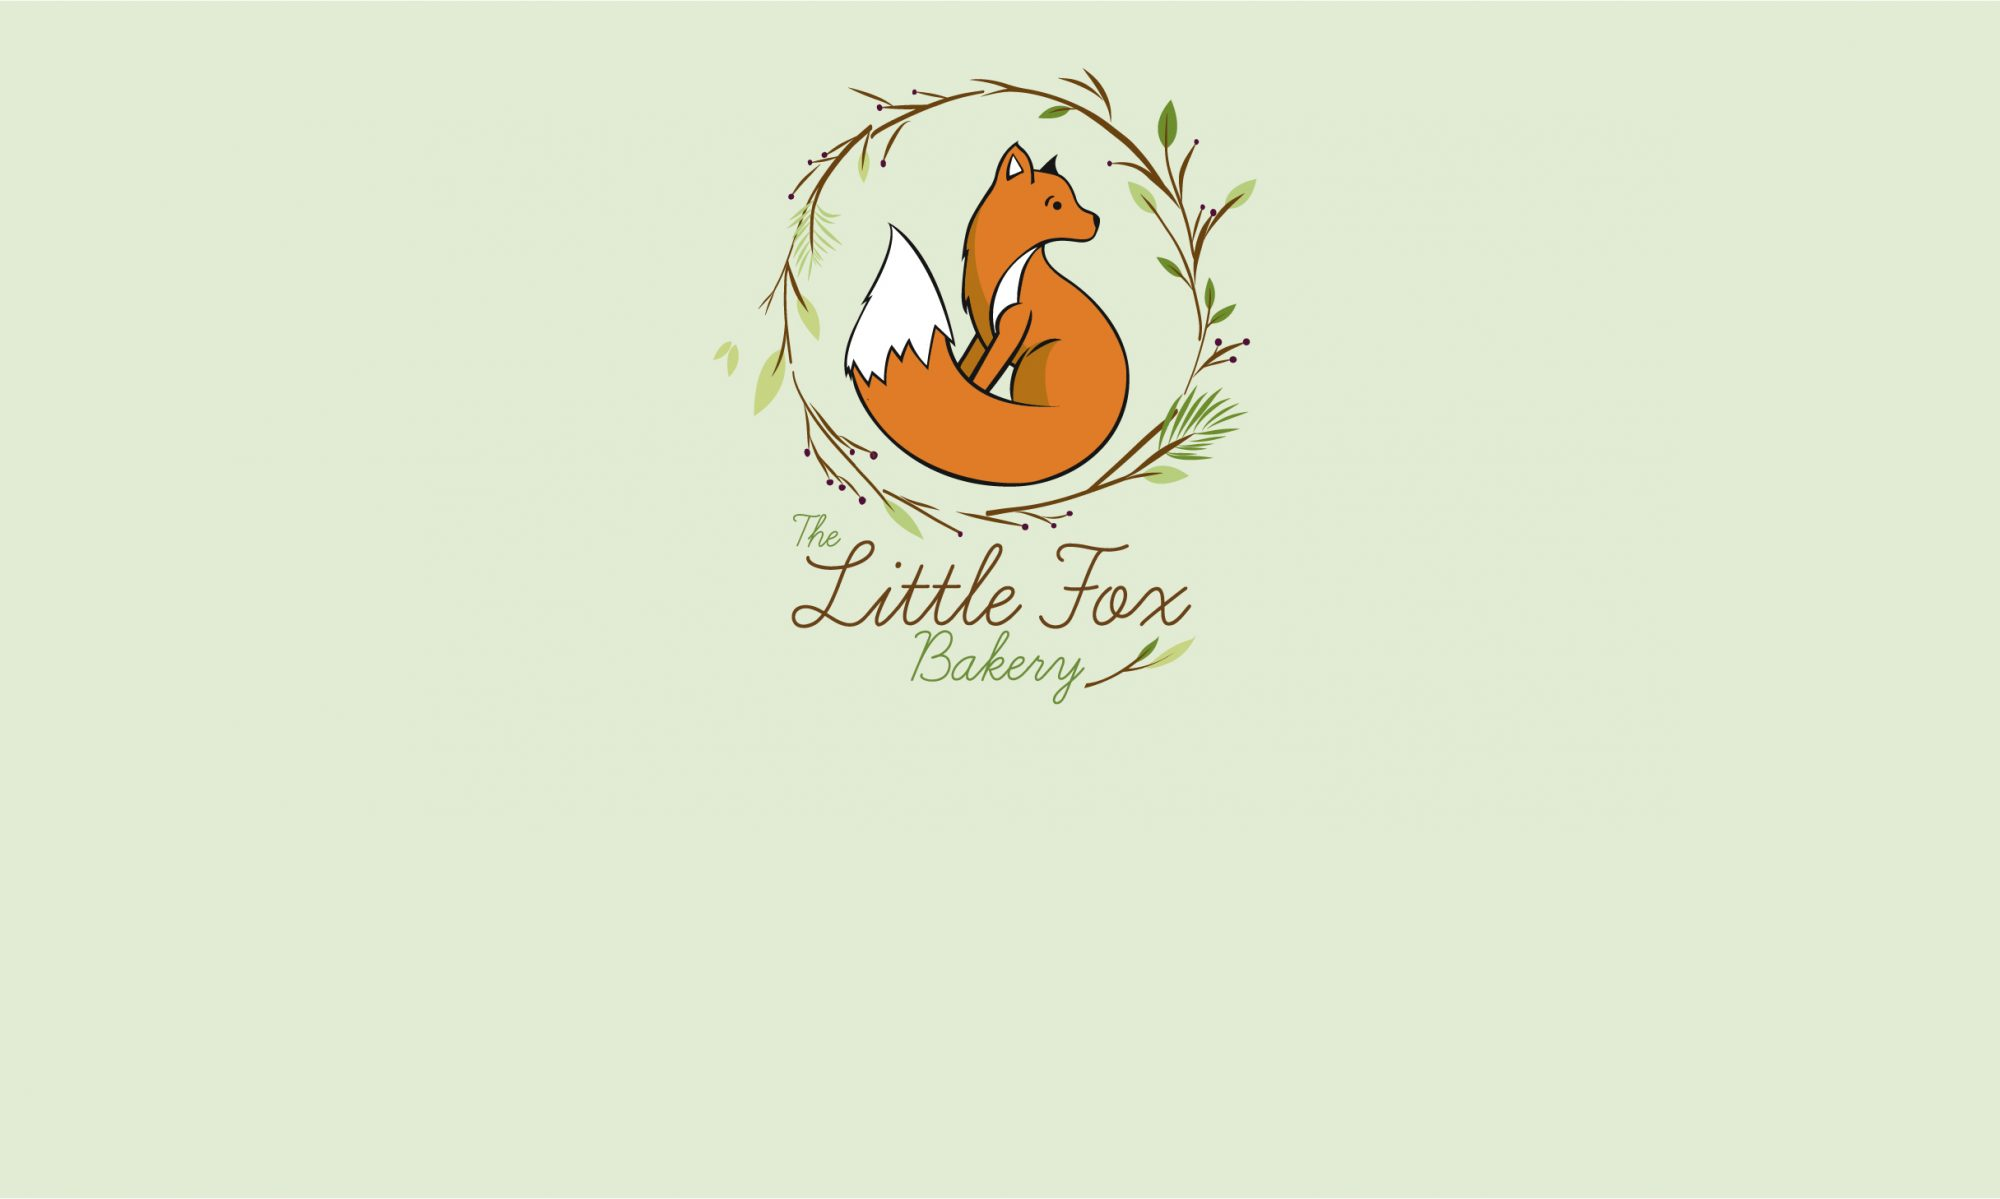 The Little Fox Bakery